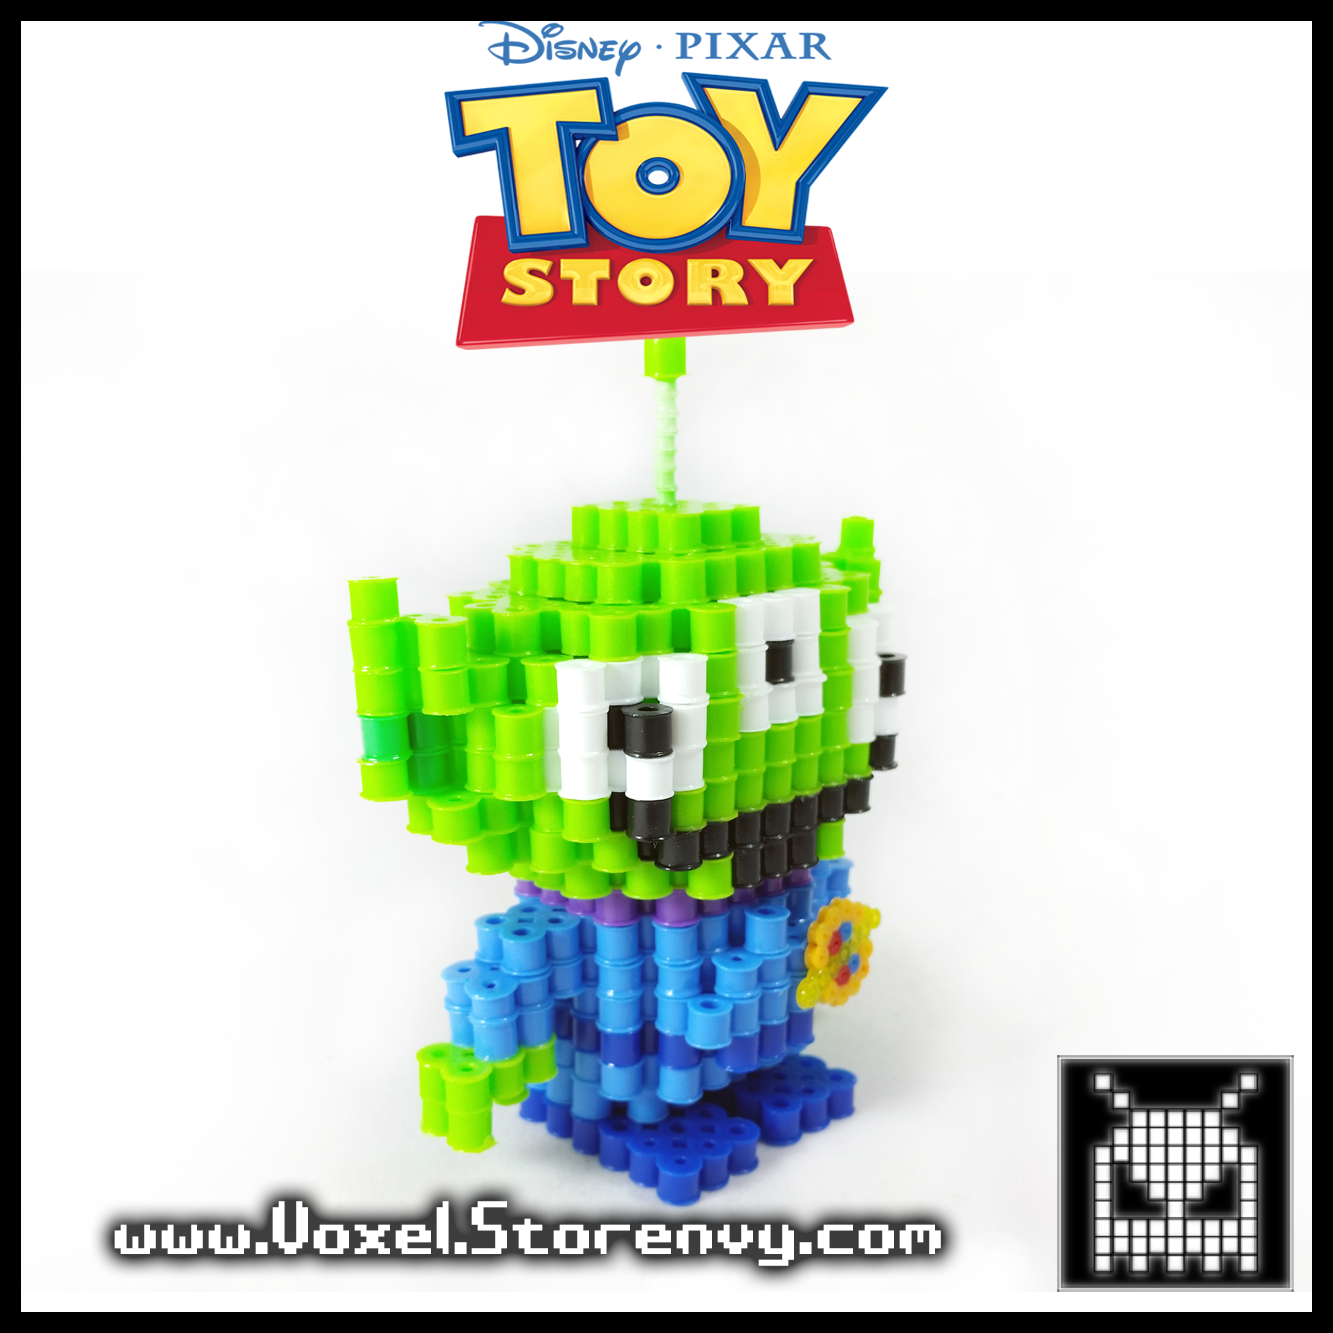 Voxel | Toy Alien Voxel Perlerbead (#Toystory #Disney) | Online Store Powered by Storenvy